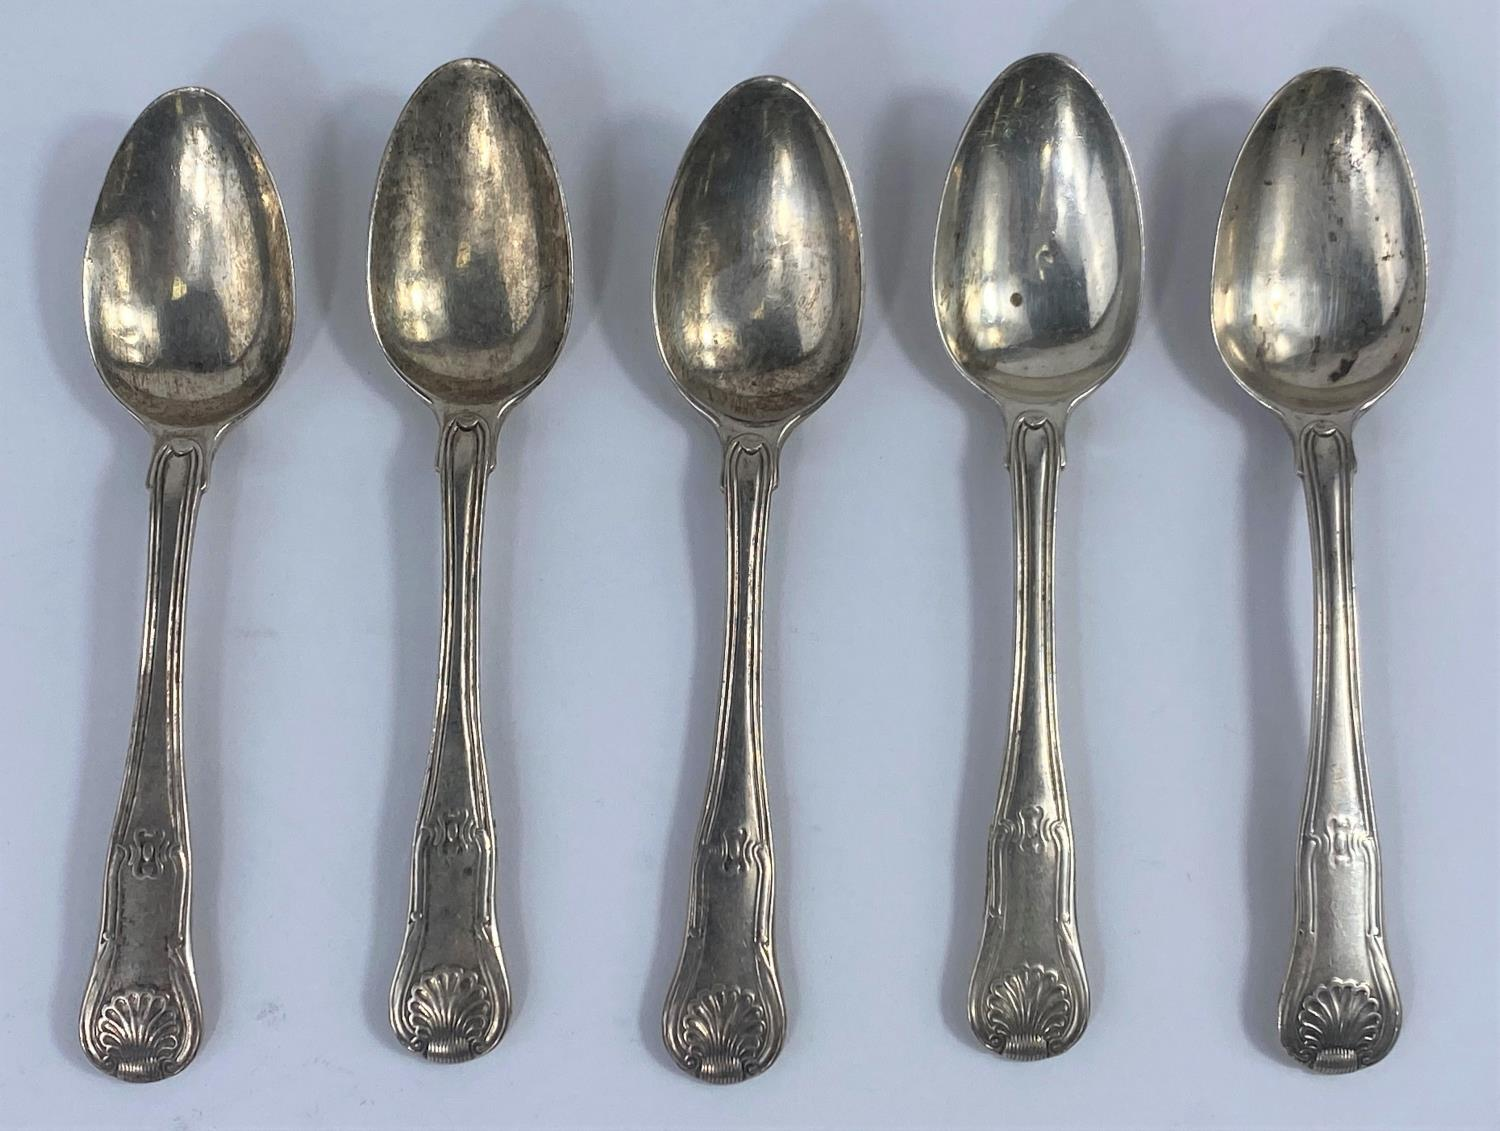 Five hallmarked silver teaspoons, fiddle thread and shell pattern, London 1815, 5.5 oz